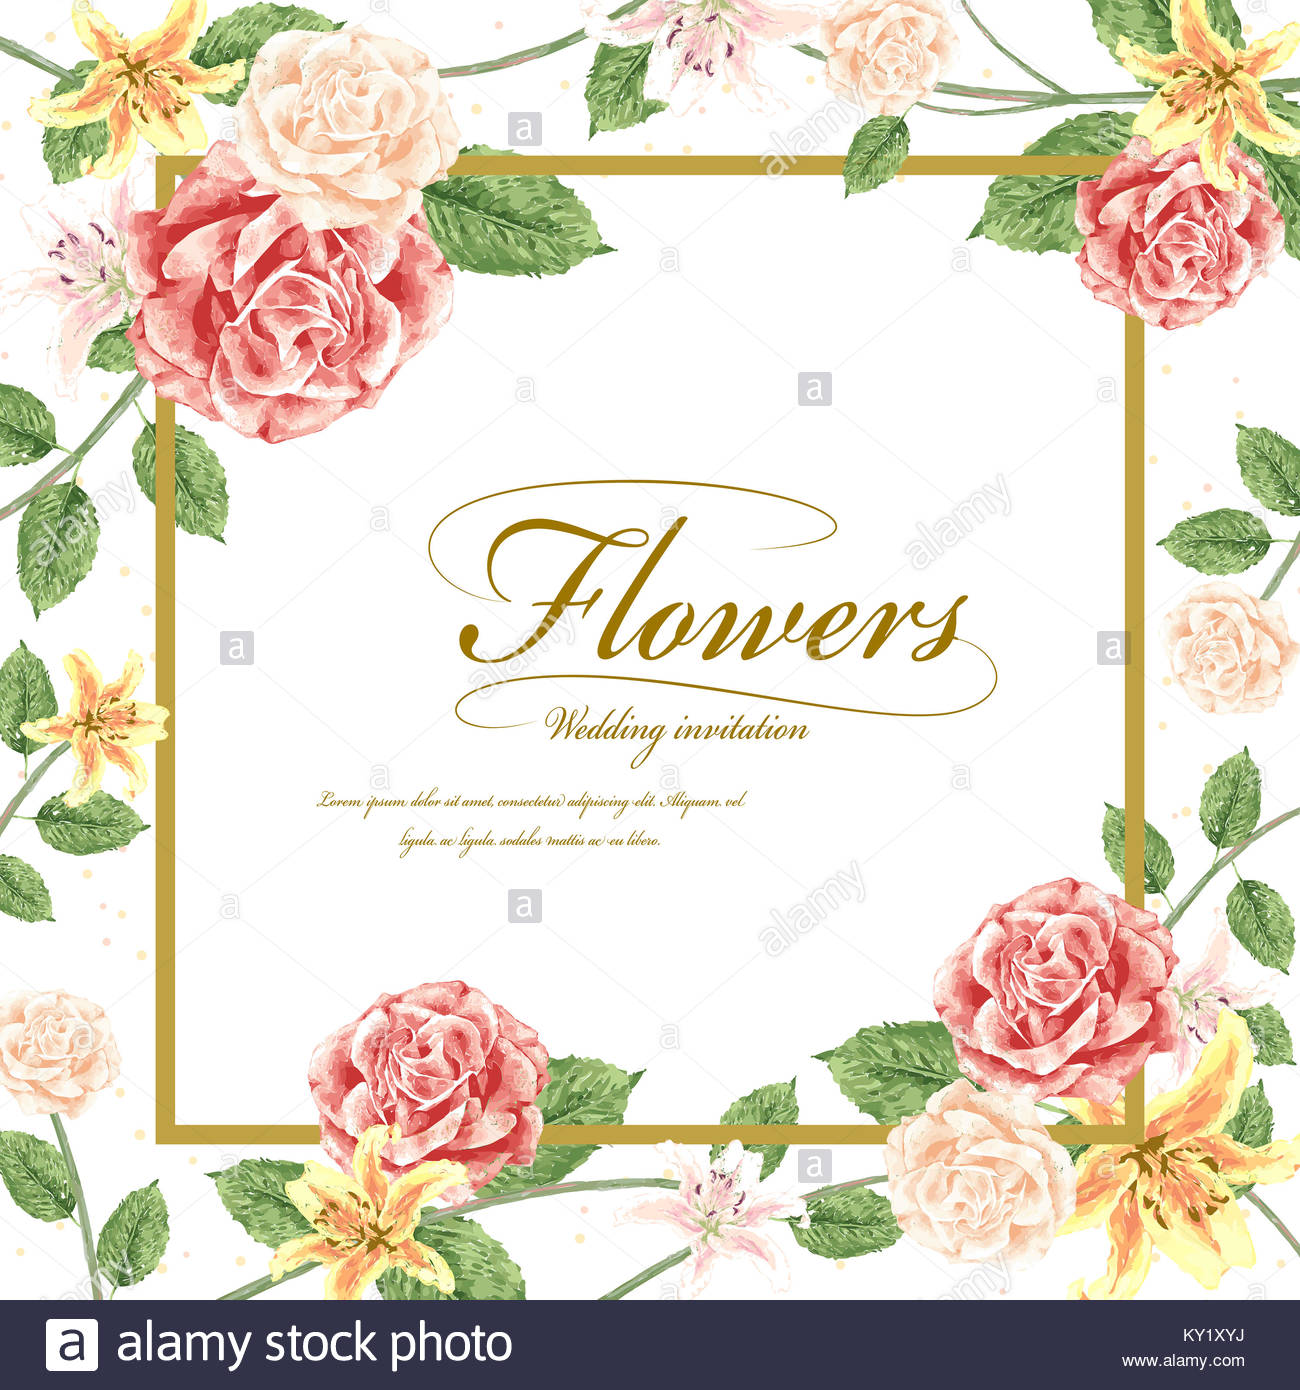 Romantic flowers wedding invitation template design with roses stock romantic flowers wedding invitation template design with roses stopboris Image collections